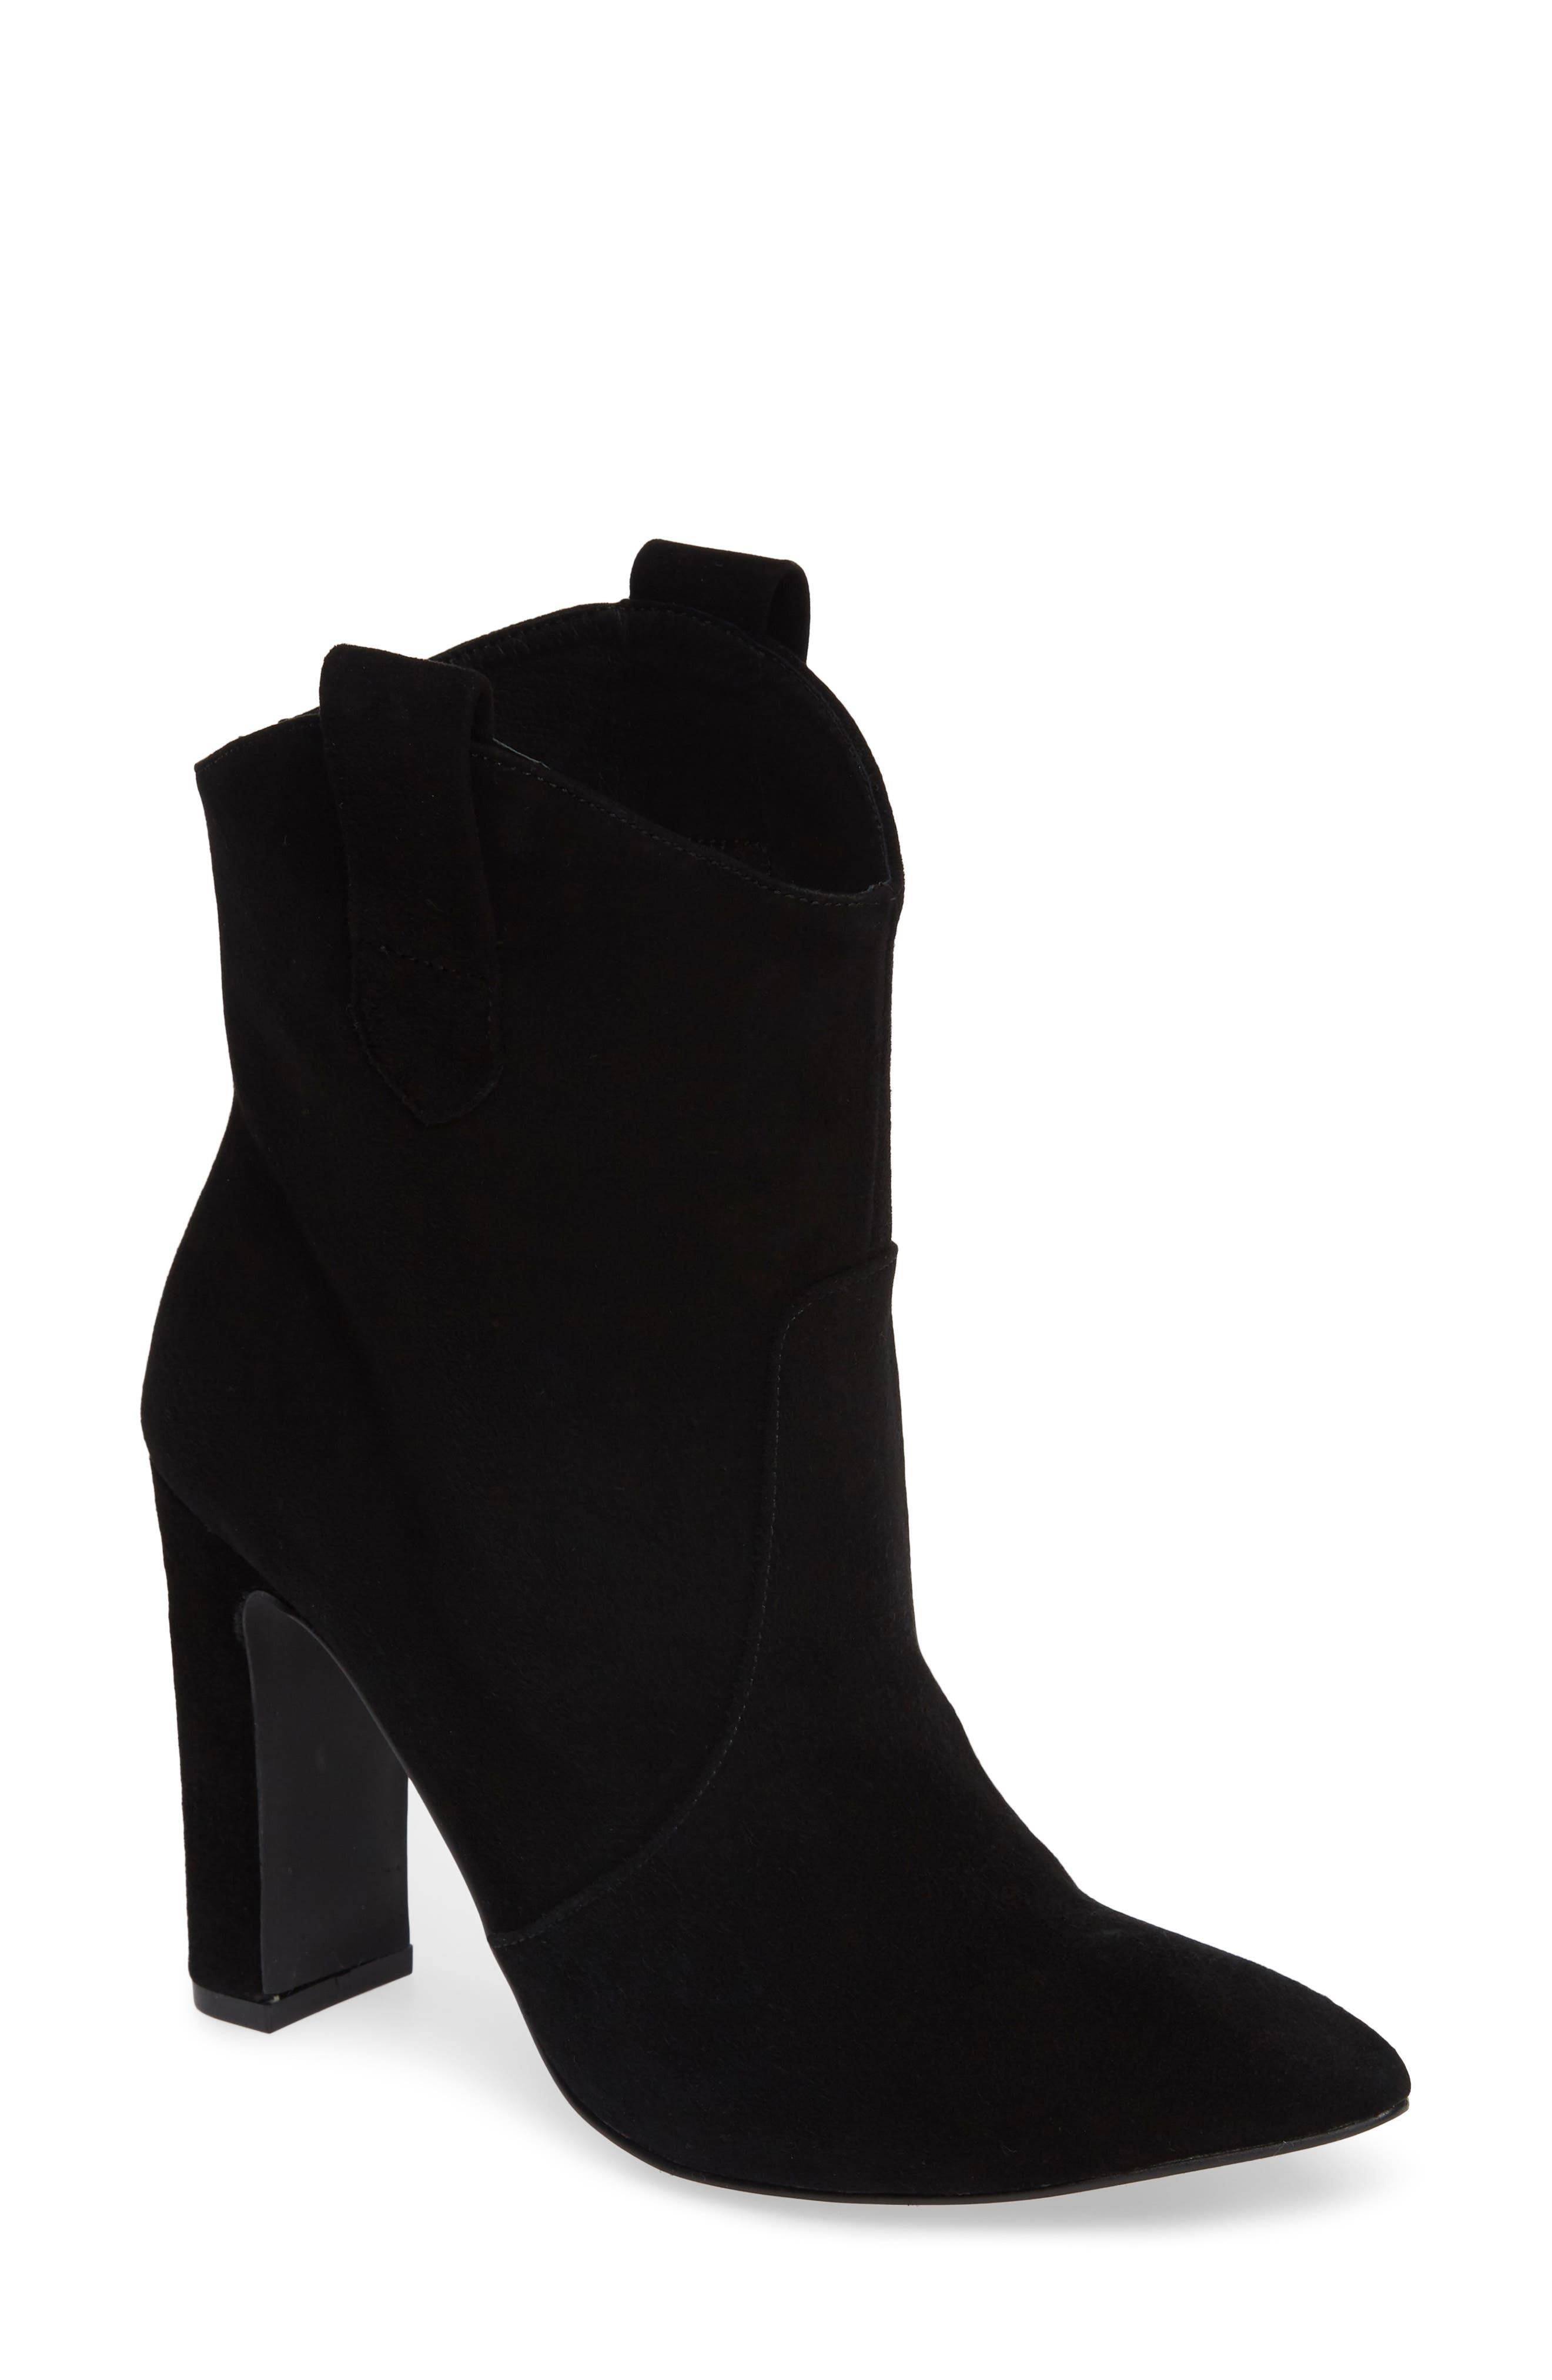 Karly Suede Bootie,                             Main thumbnail 1, color,                             BLACK SUEDE